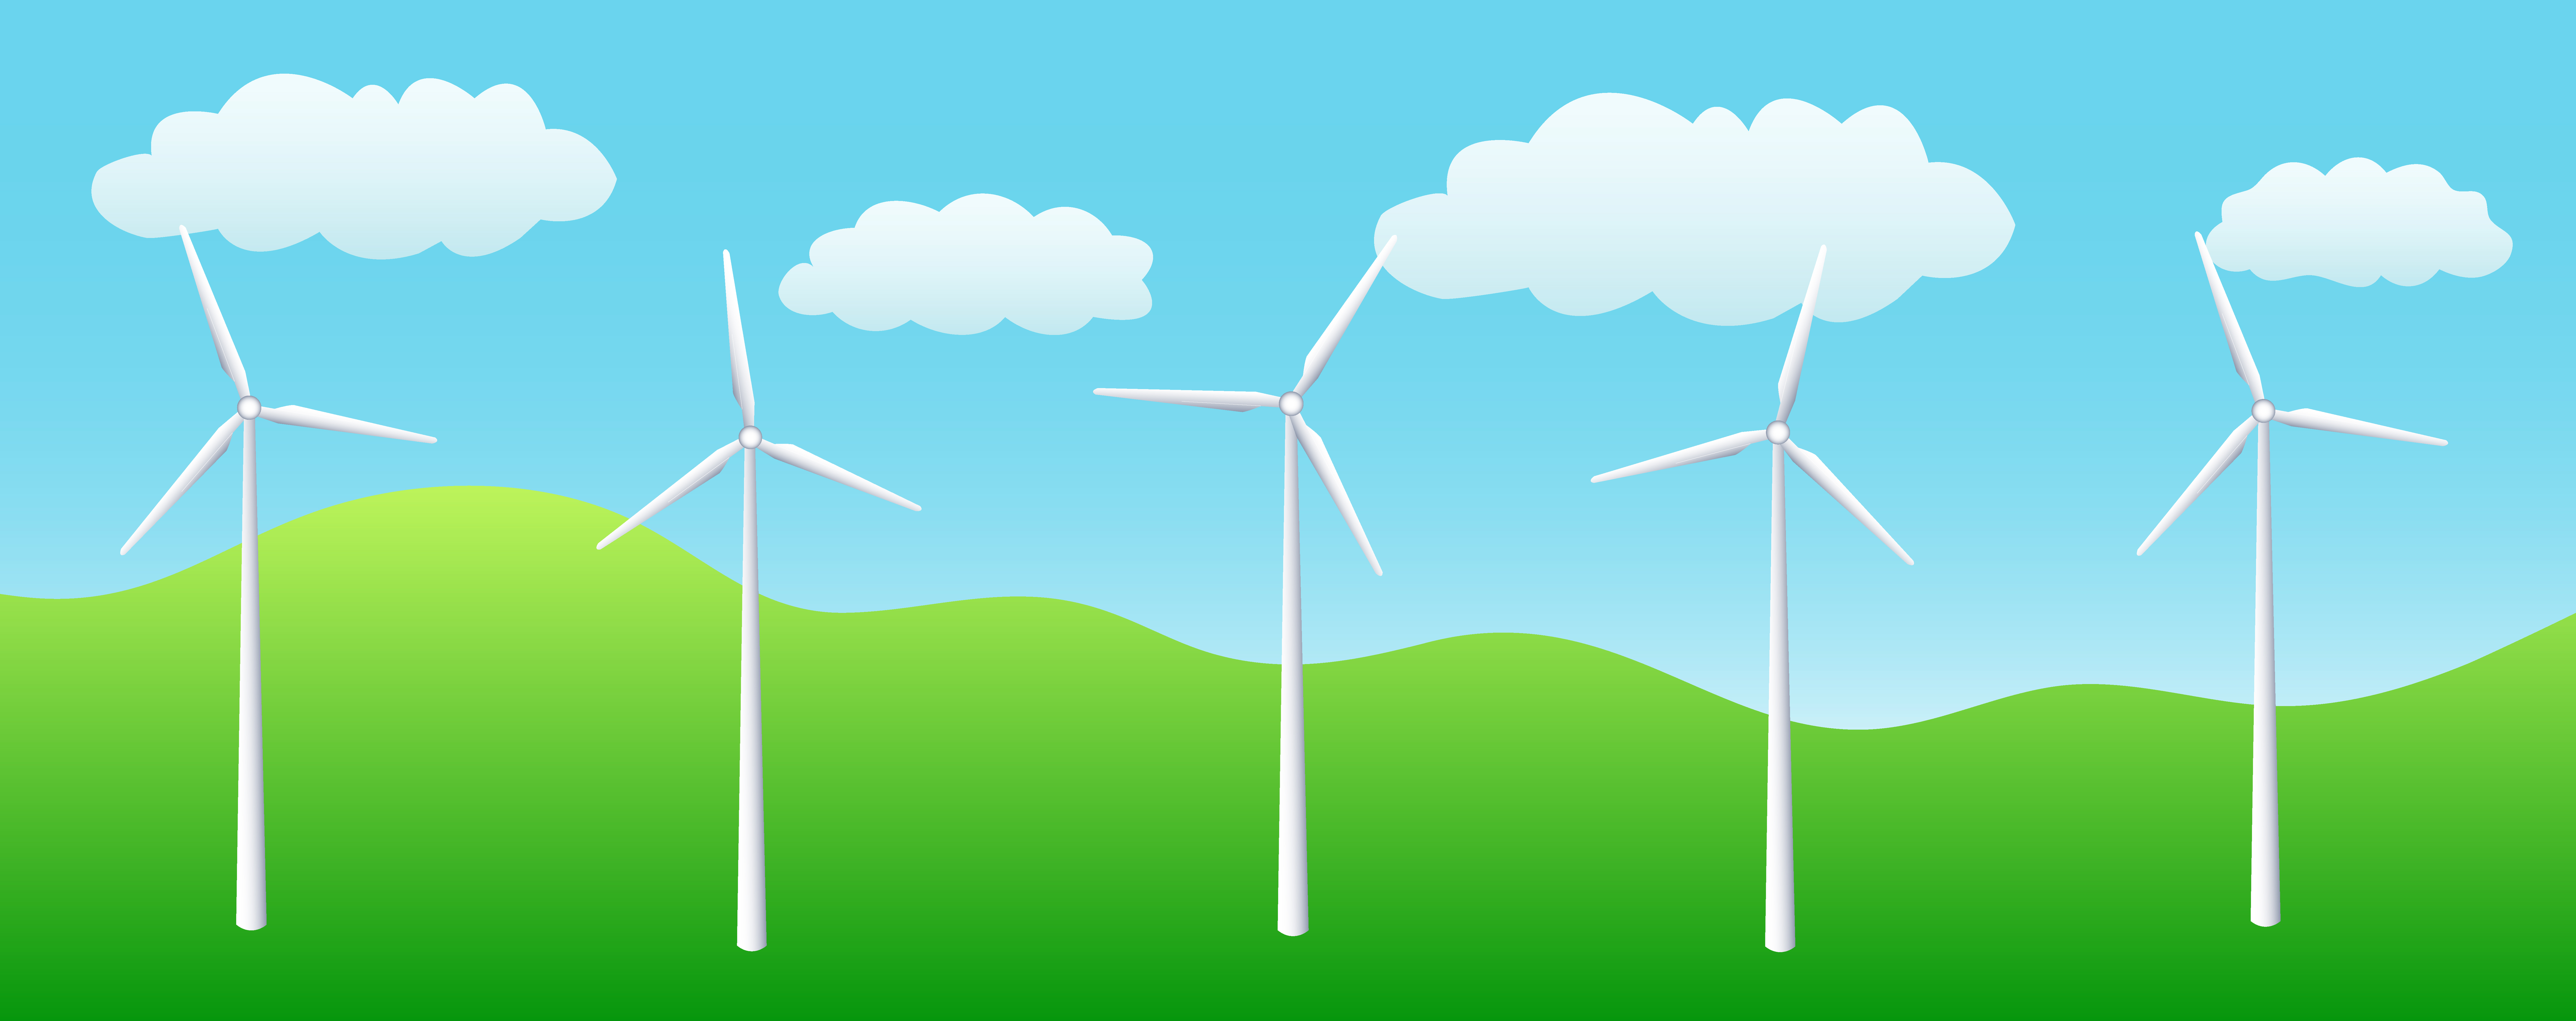 Wind Turbine clipart wind farm Turbines wind and systems Security